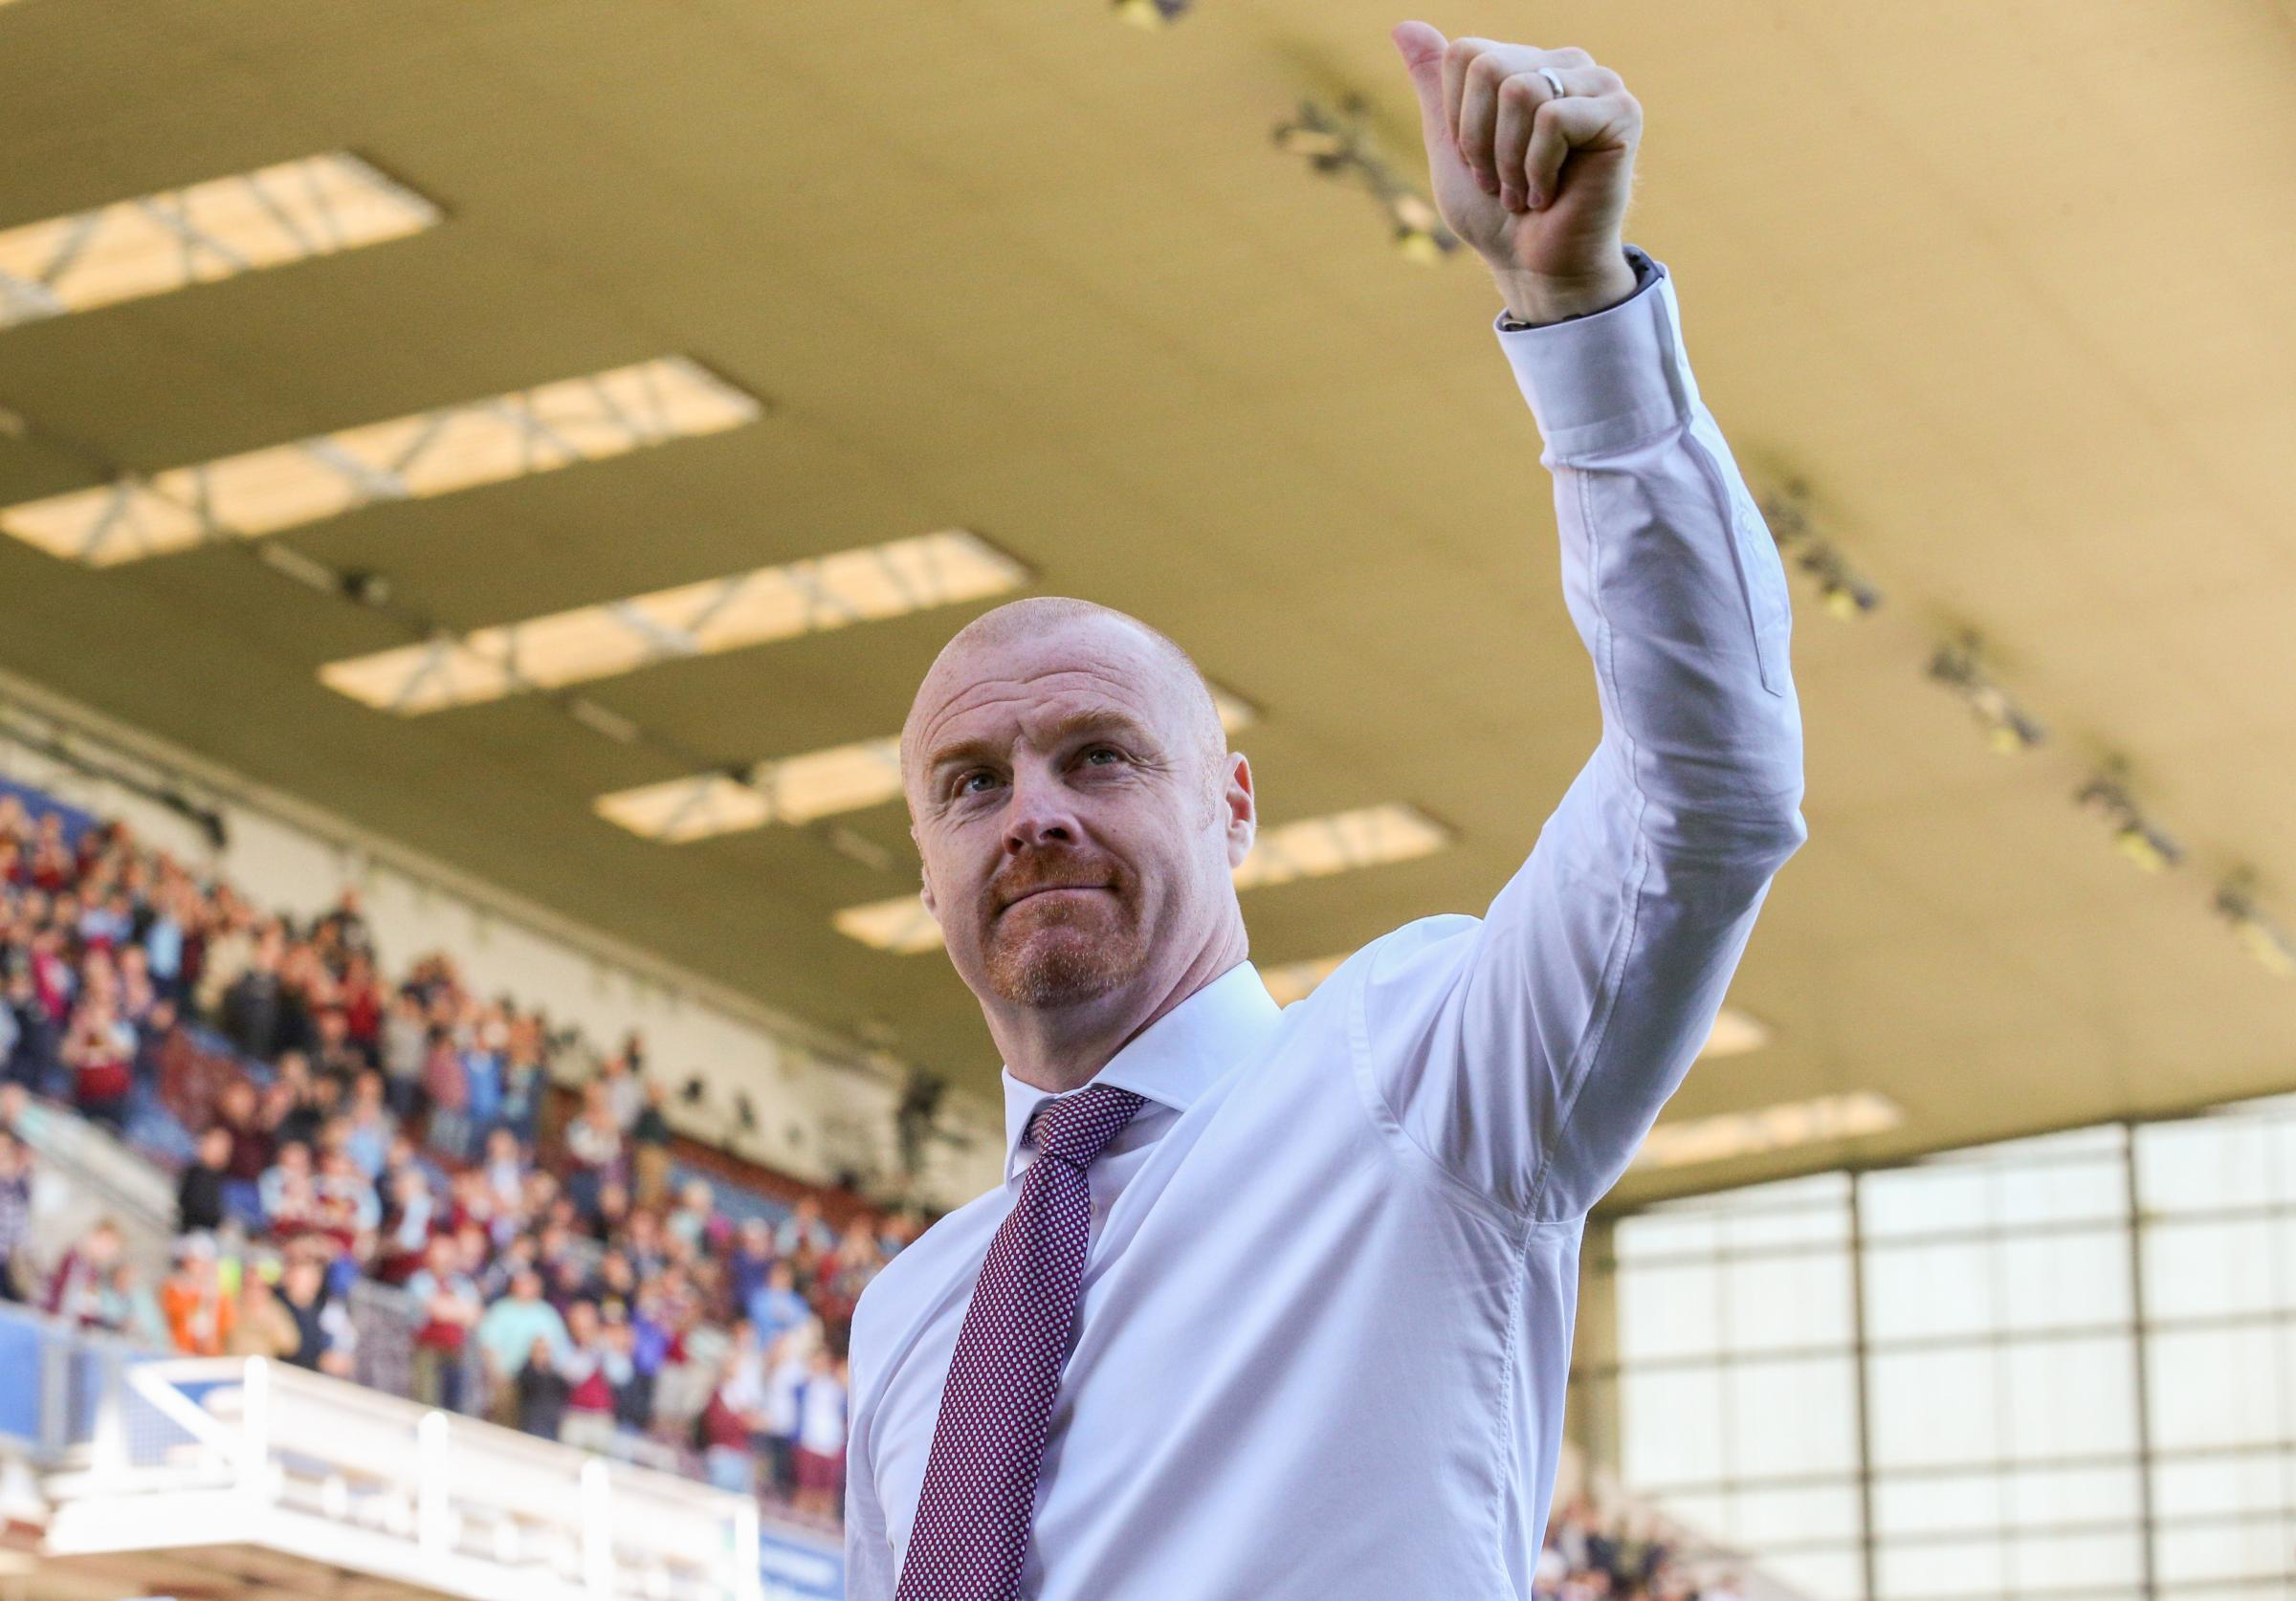 Sean Dyche will focus on quality over quantity this summer